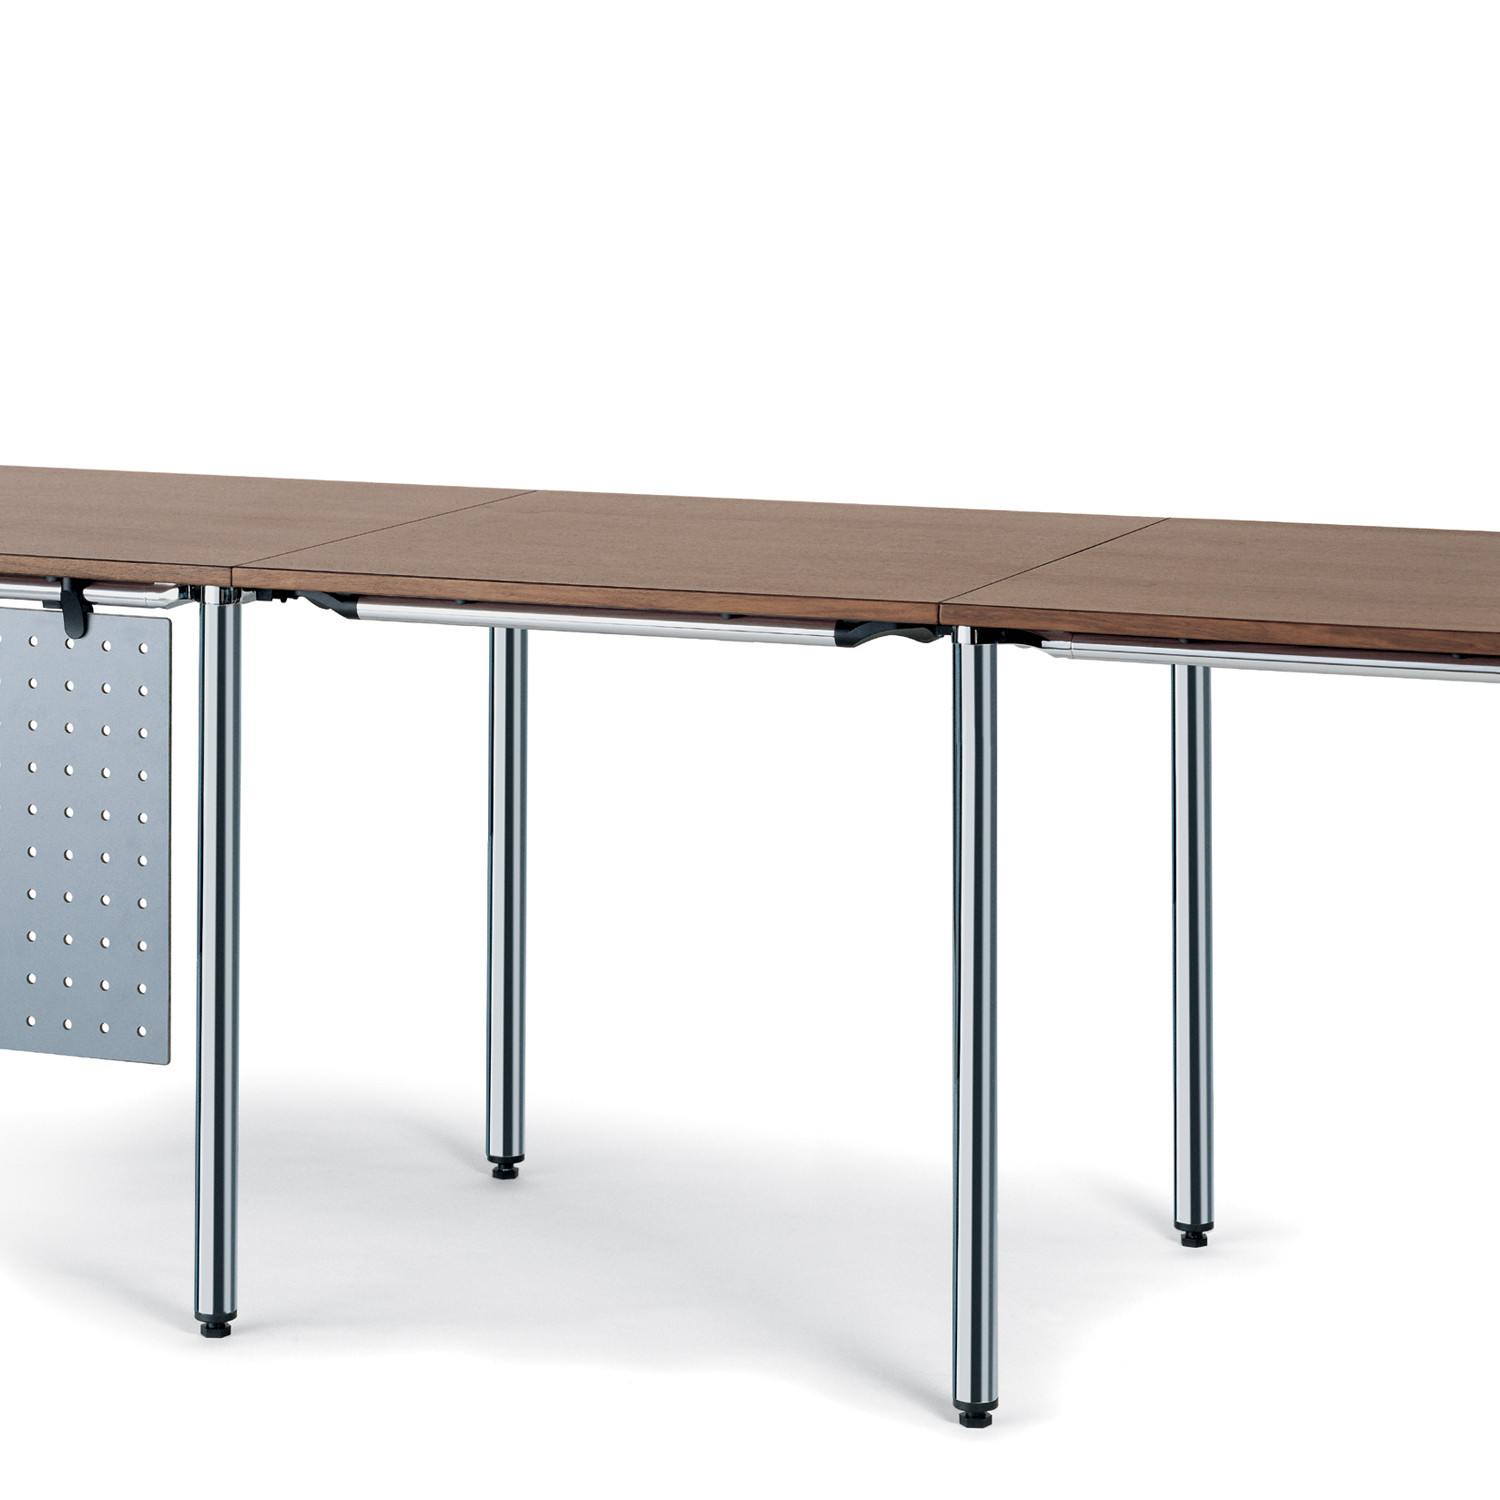 Talk About Modular Table System